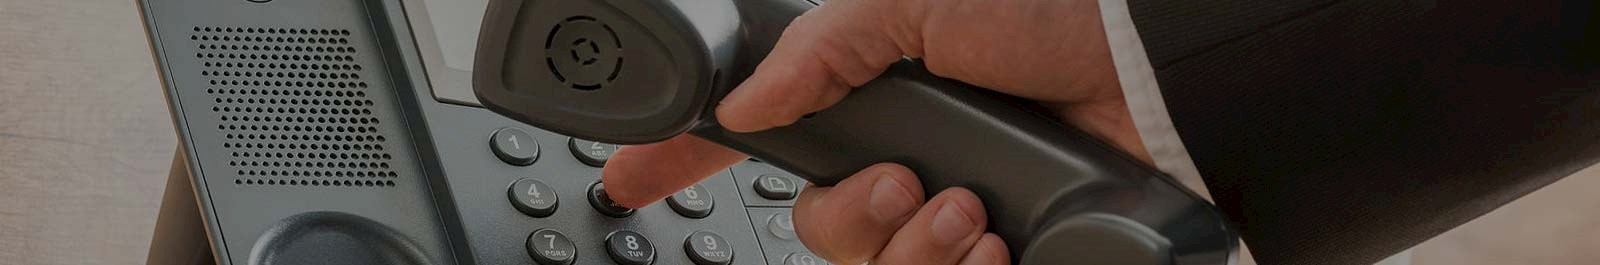 Header image - closeup of hand dialing a phone for help